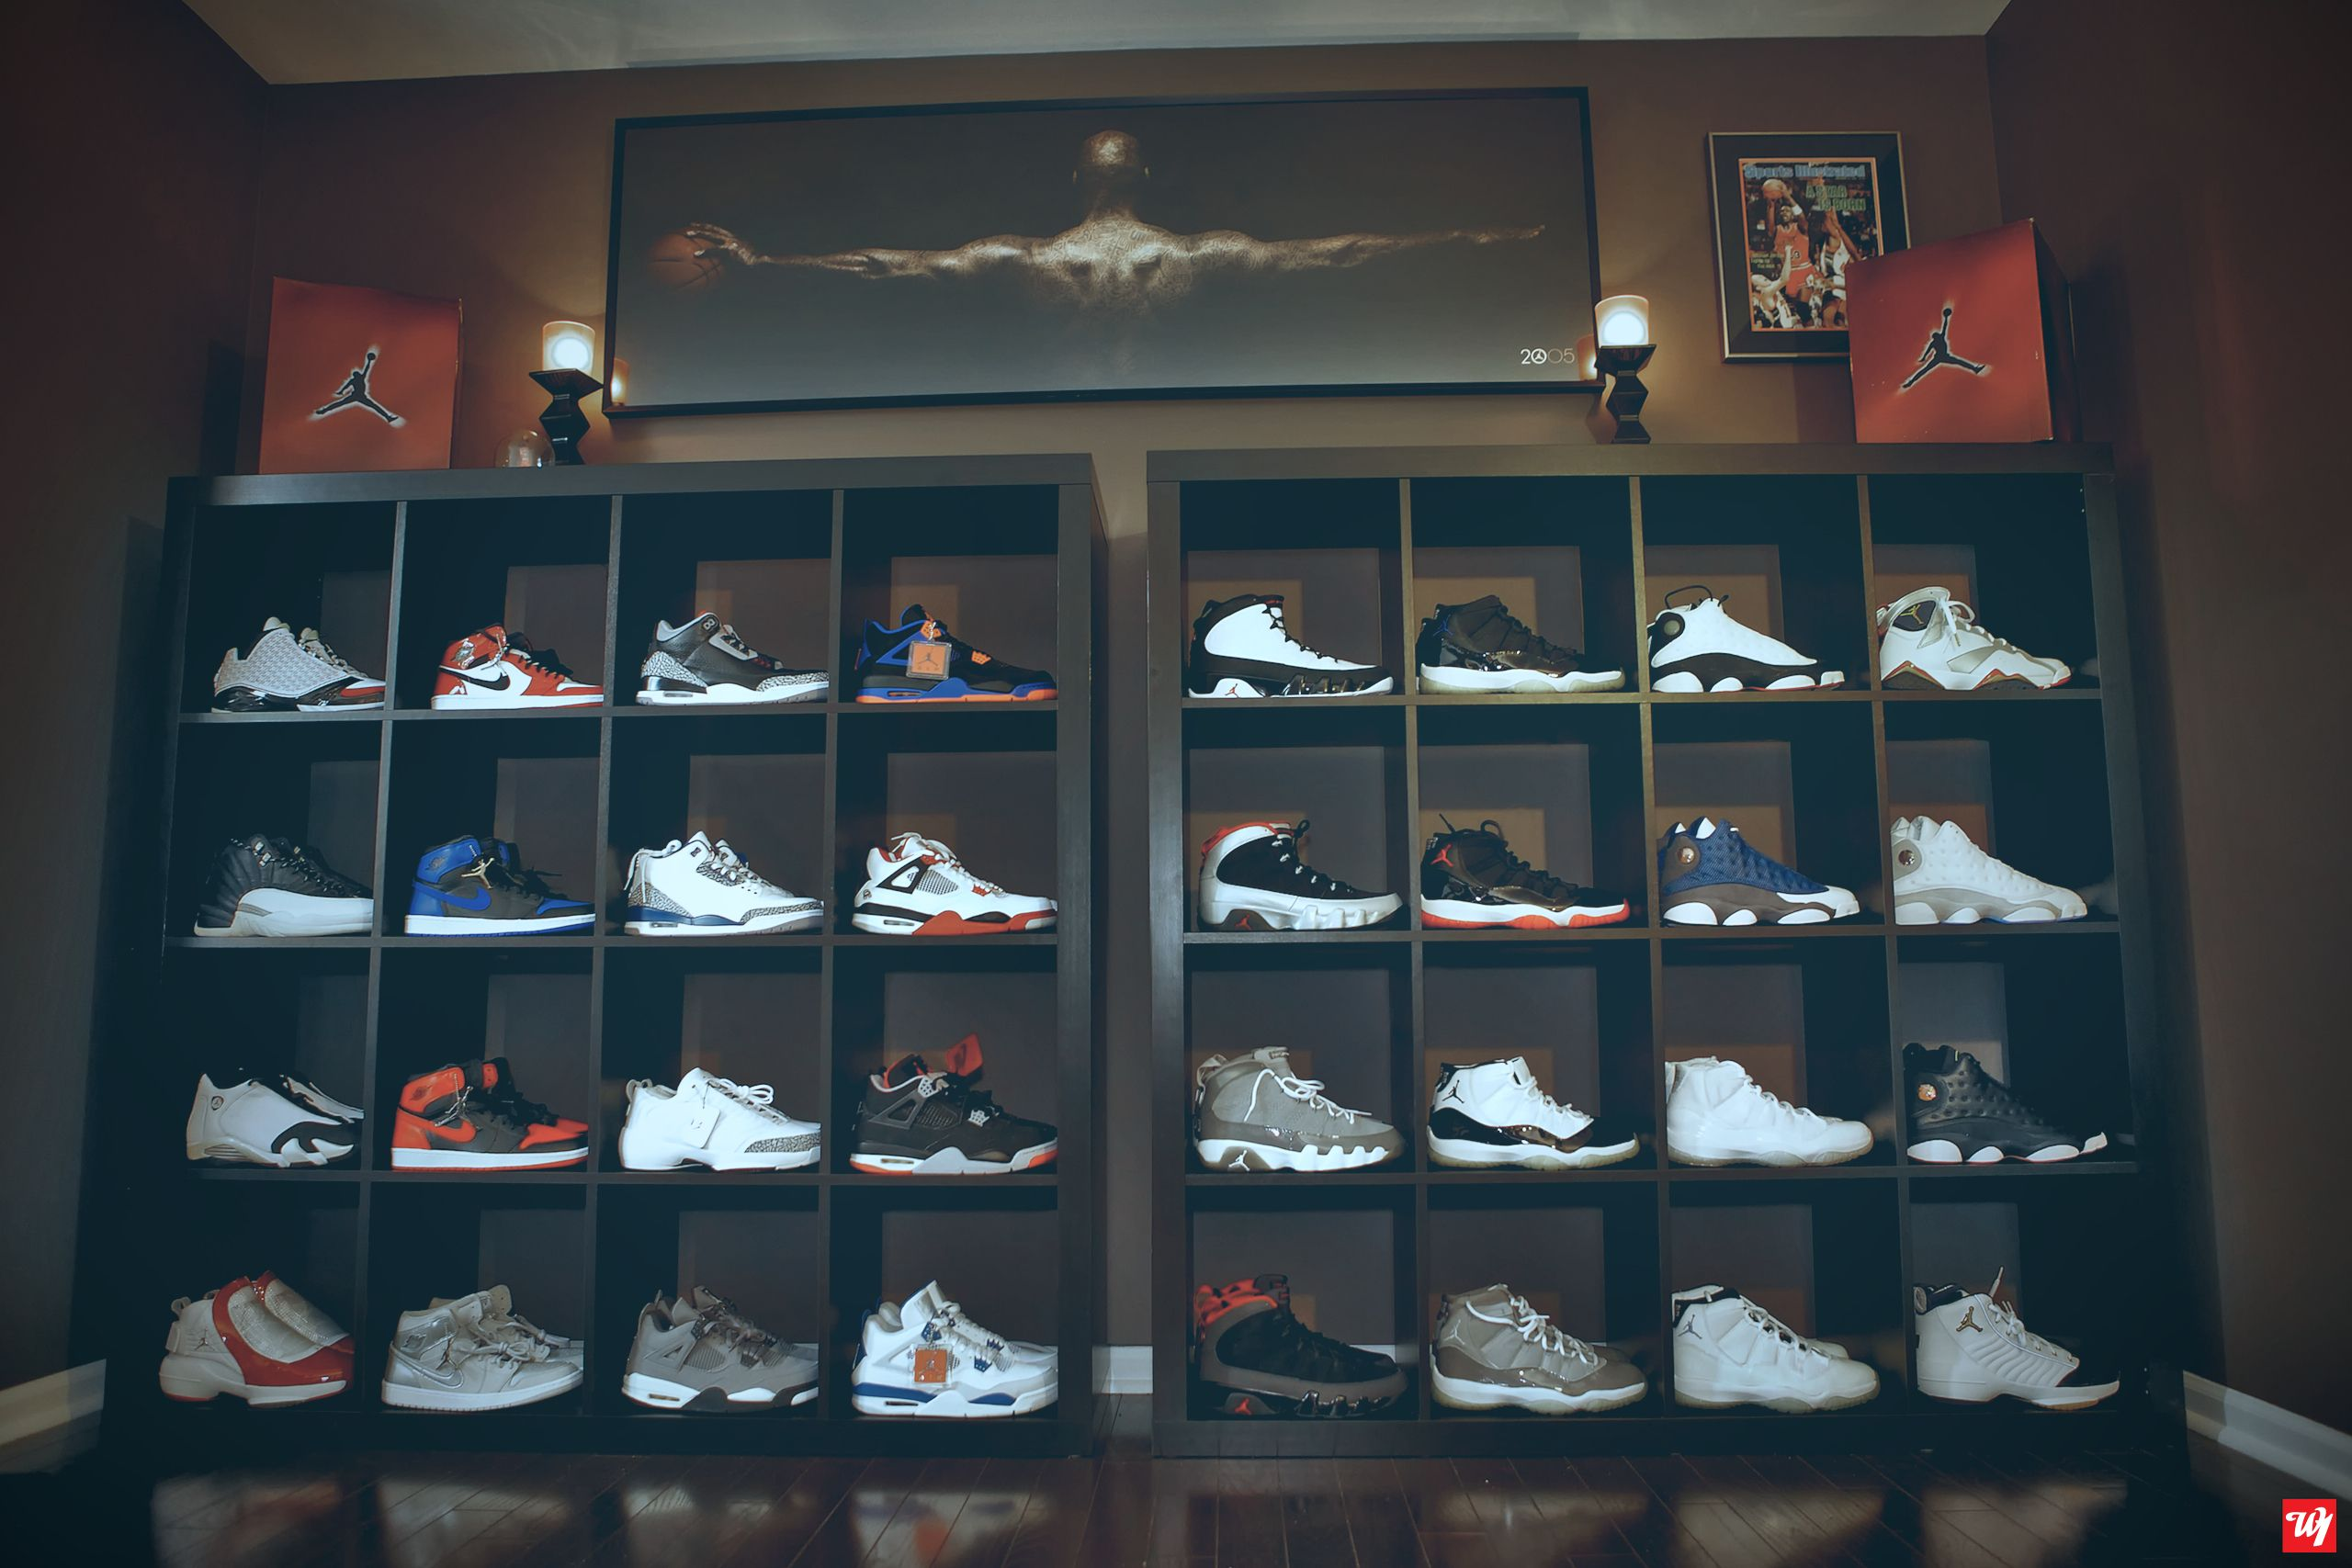 Ward 1 Air Jordan Collection Shoe Room Air Jordan Deadstock